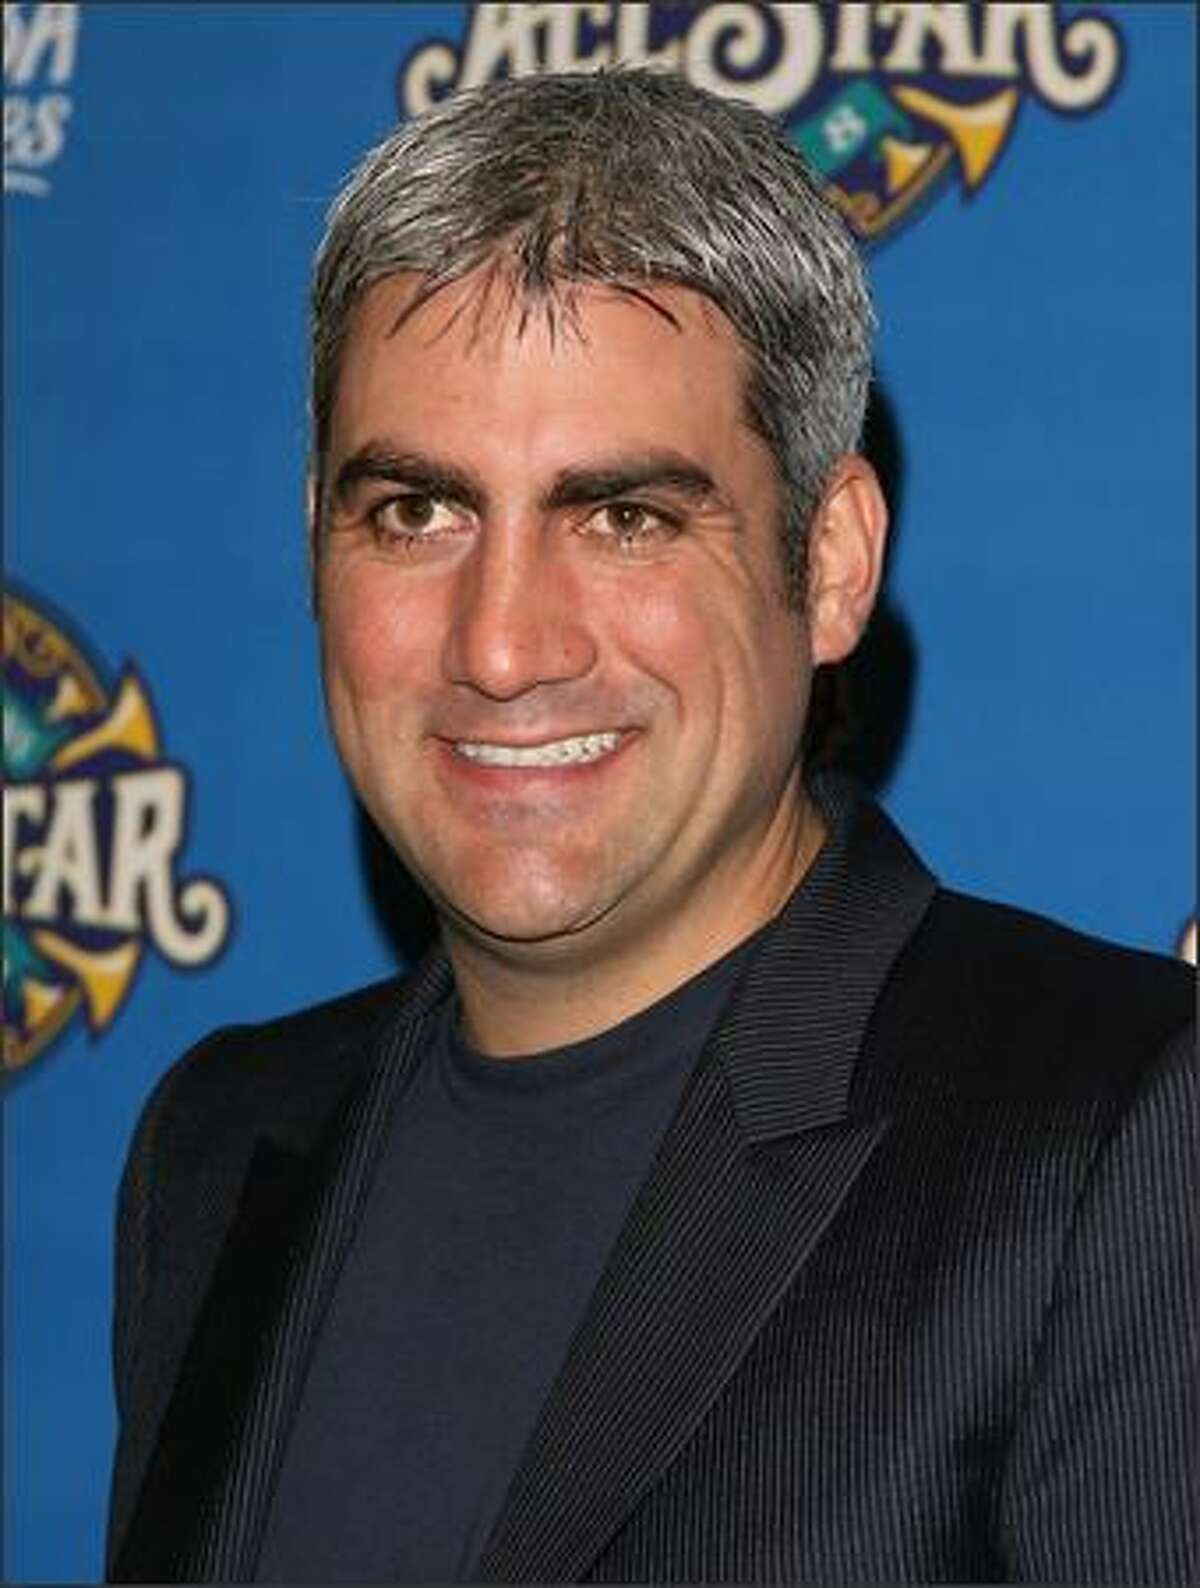 Singer Taylor Hicks arrives at the 57th NBA All-Star Game, part of 2008 NBA All-Star Weekend at the New Orleans Arena.